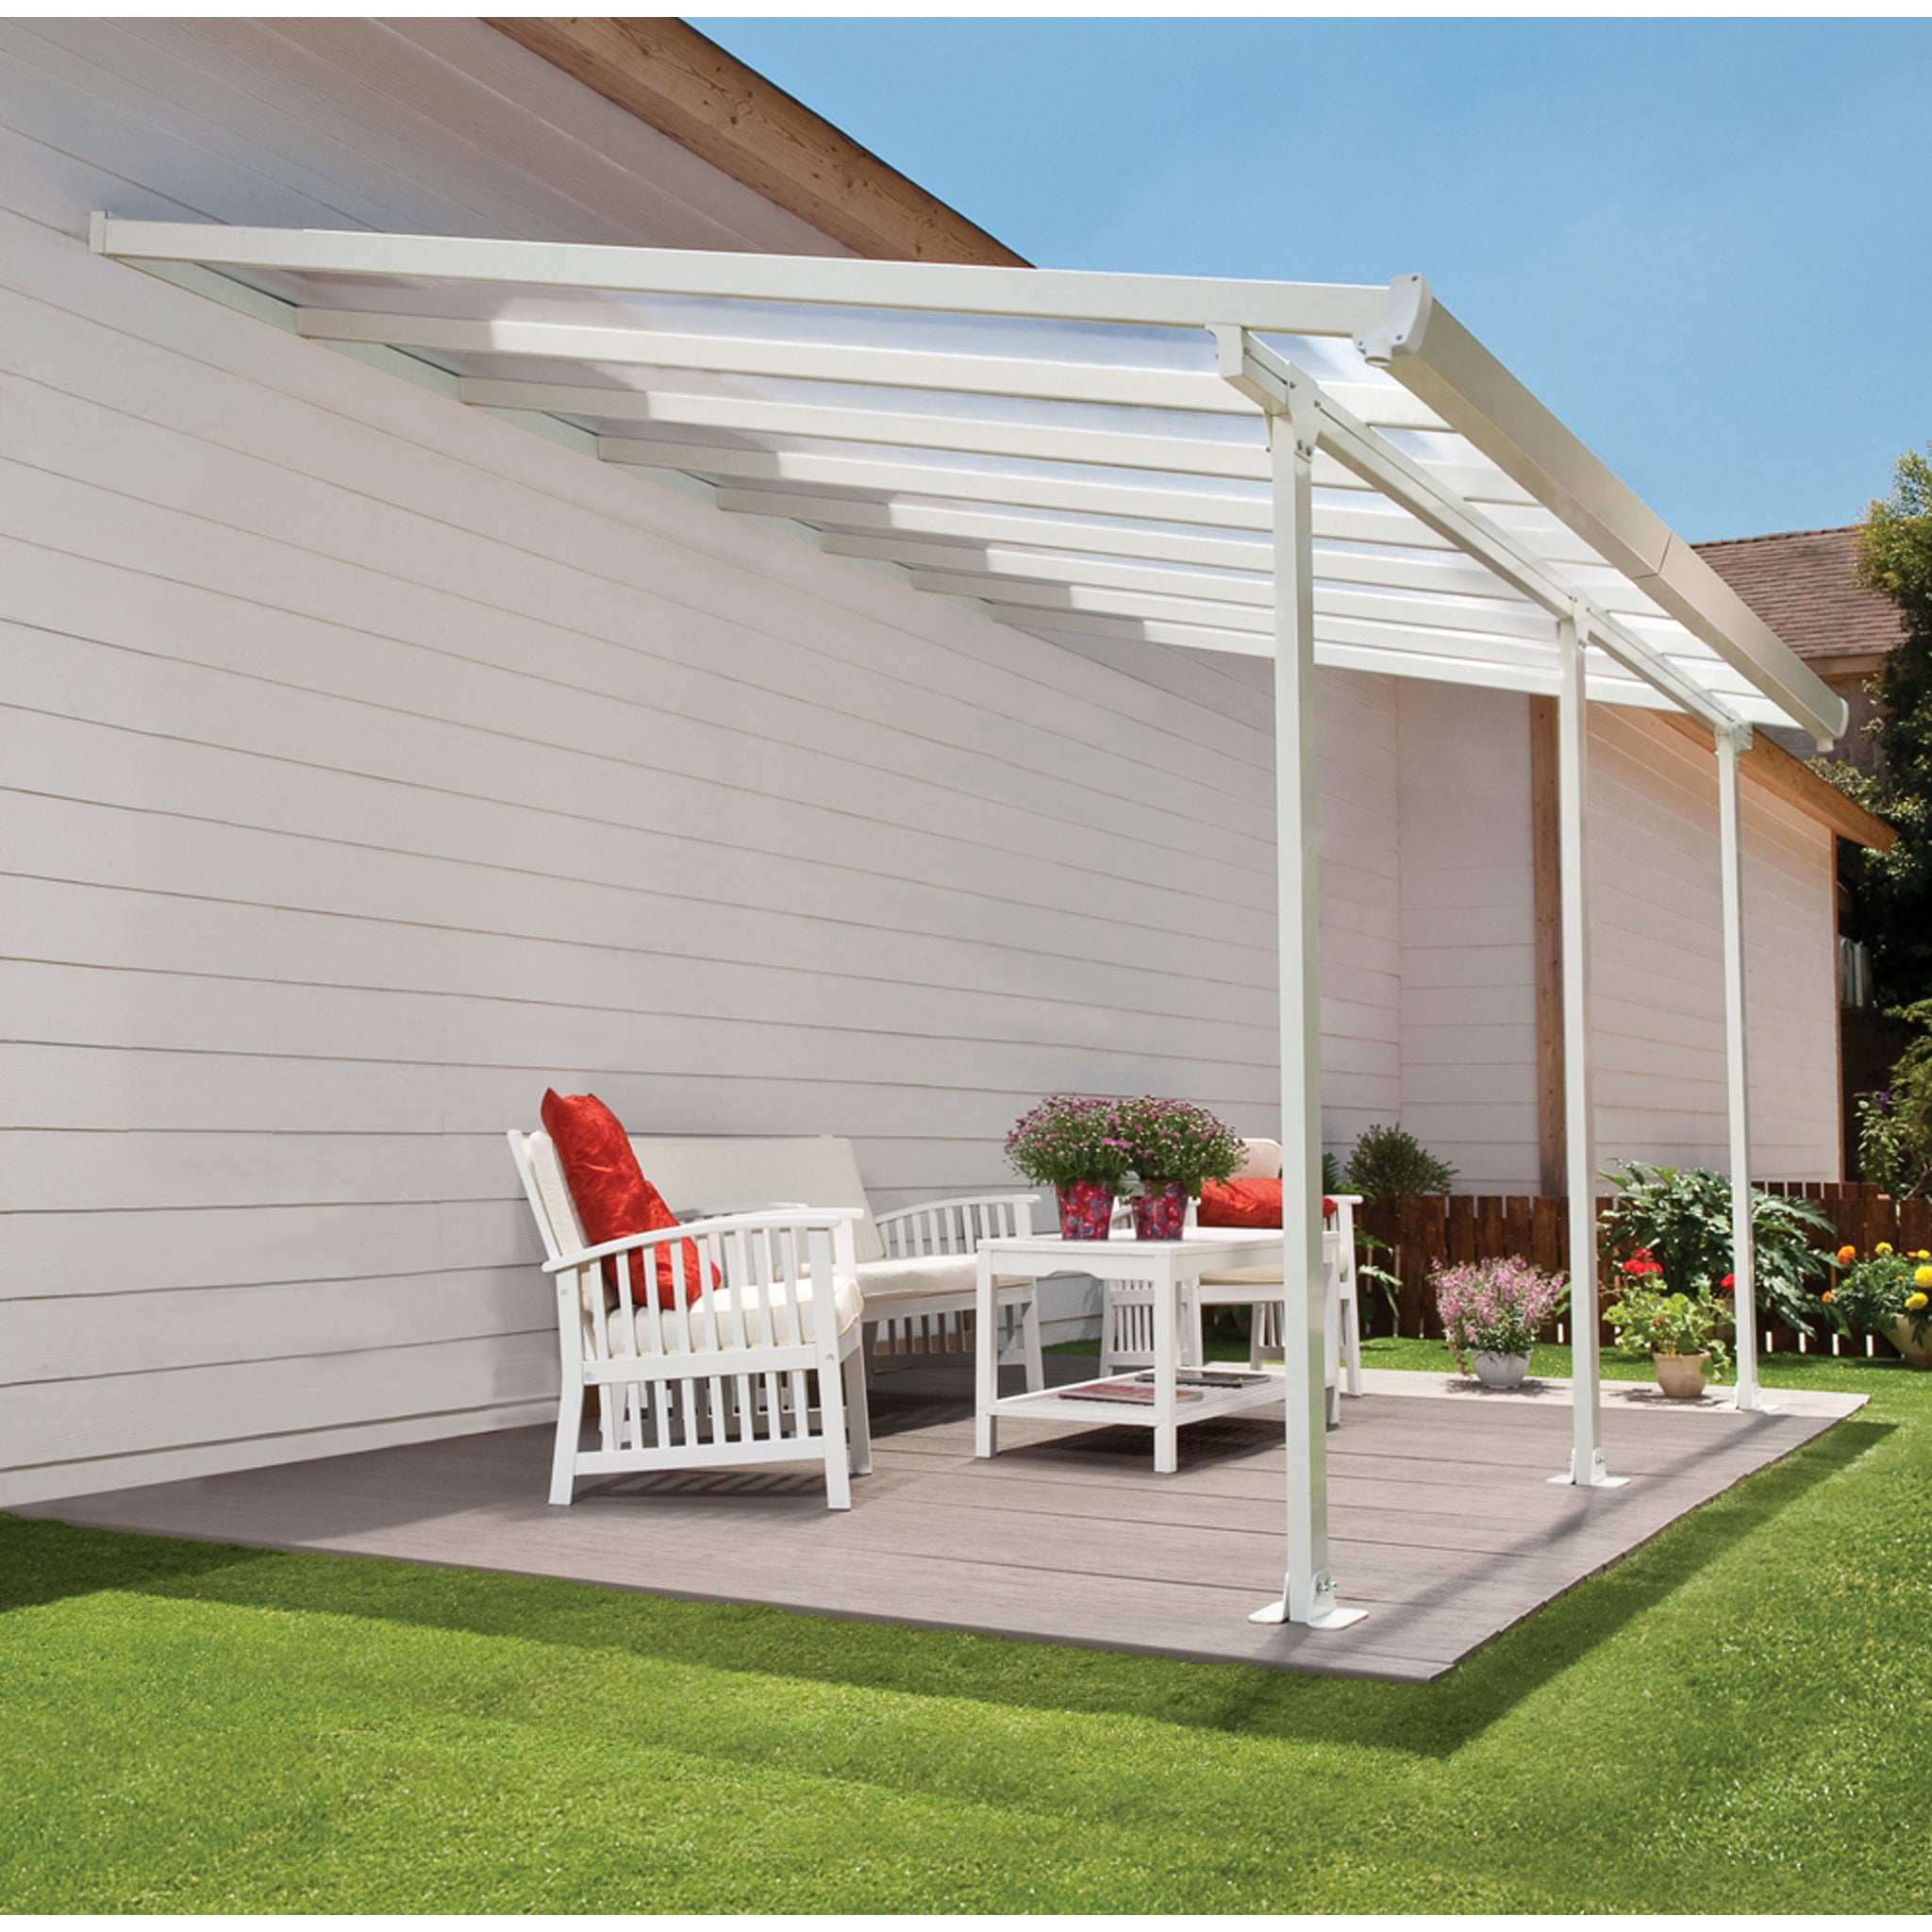 dining home set kits sets awning cover supply for full covers patio furniture door lowes superior roof cost table chairs aluminum awnings bench size doors bar